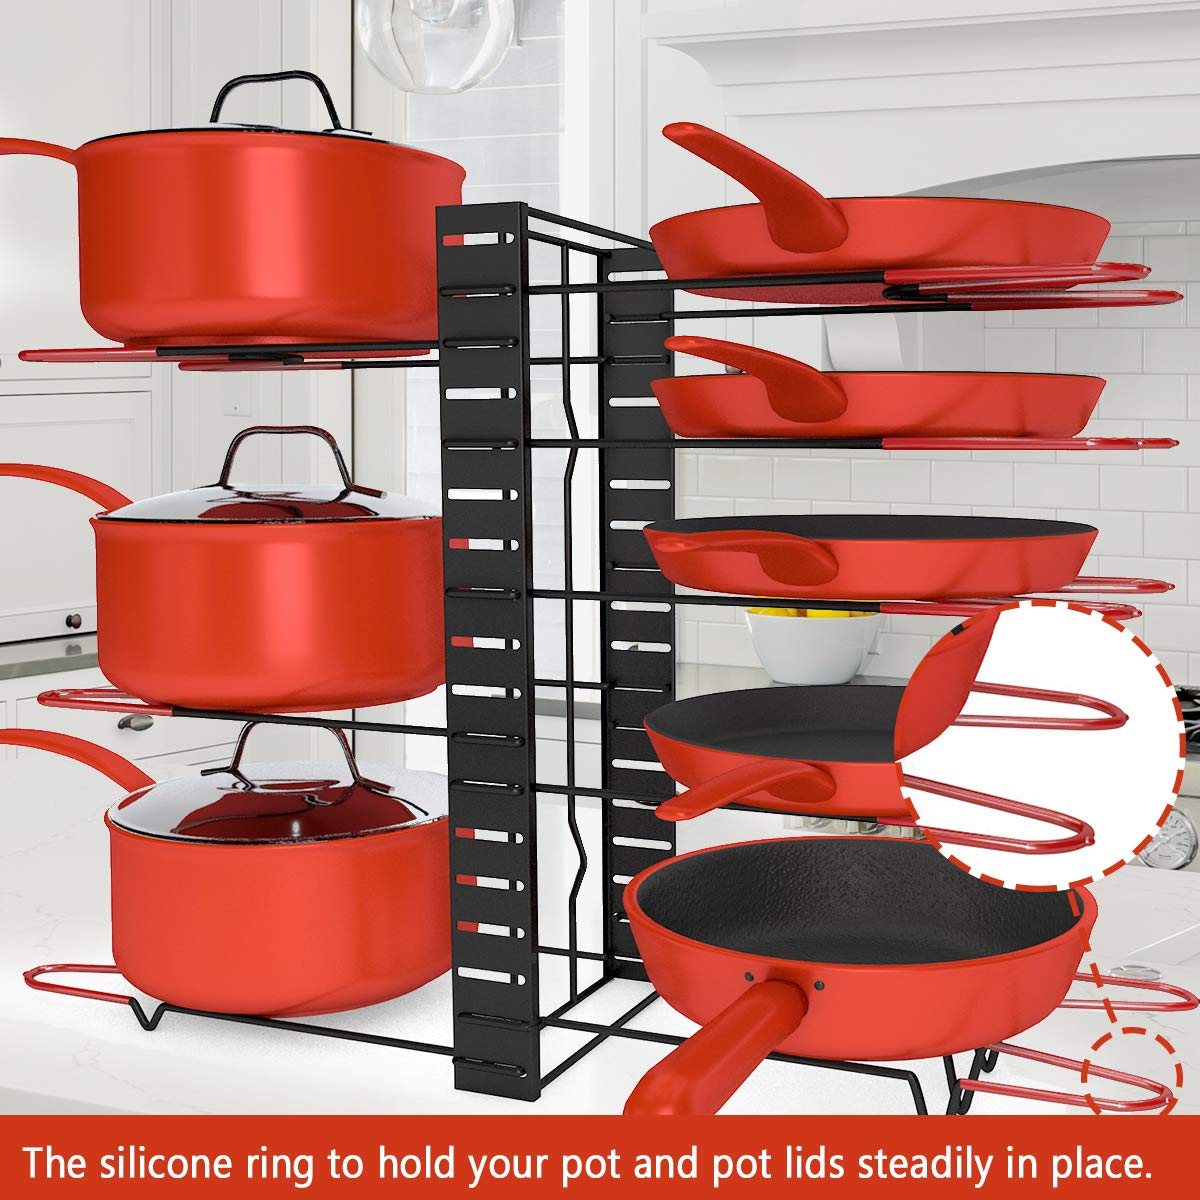 MCIRCO Pot Rack Organizer, 3 DIY Methods, Height and Position are Adjustable 8+ Pots Holder, Black Metal Kitchen Cabinet Pantry Pot Lid Holder by Mcirco (Image #5)